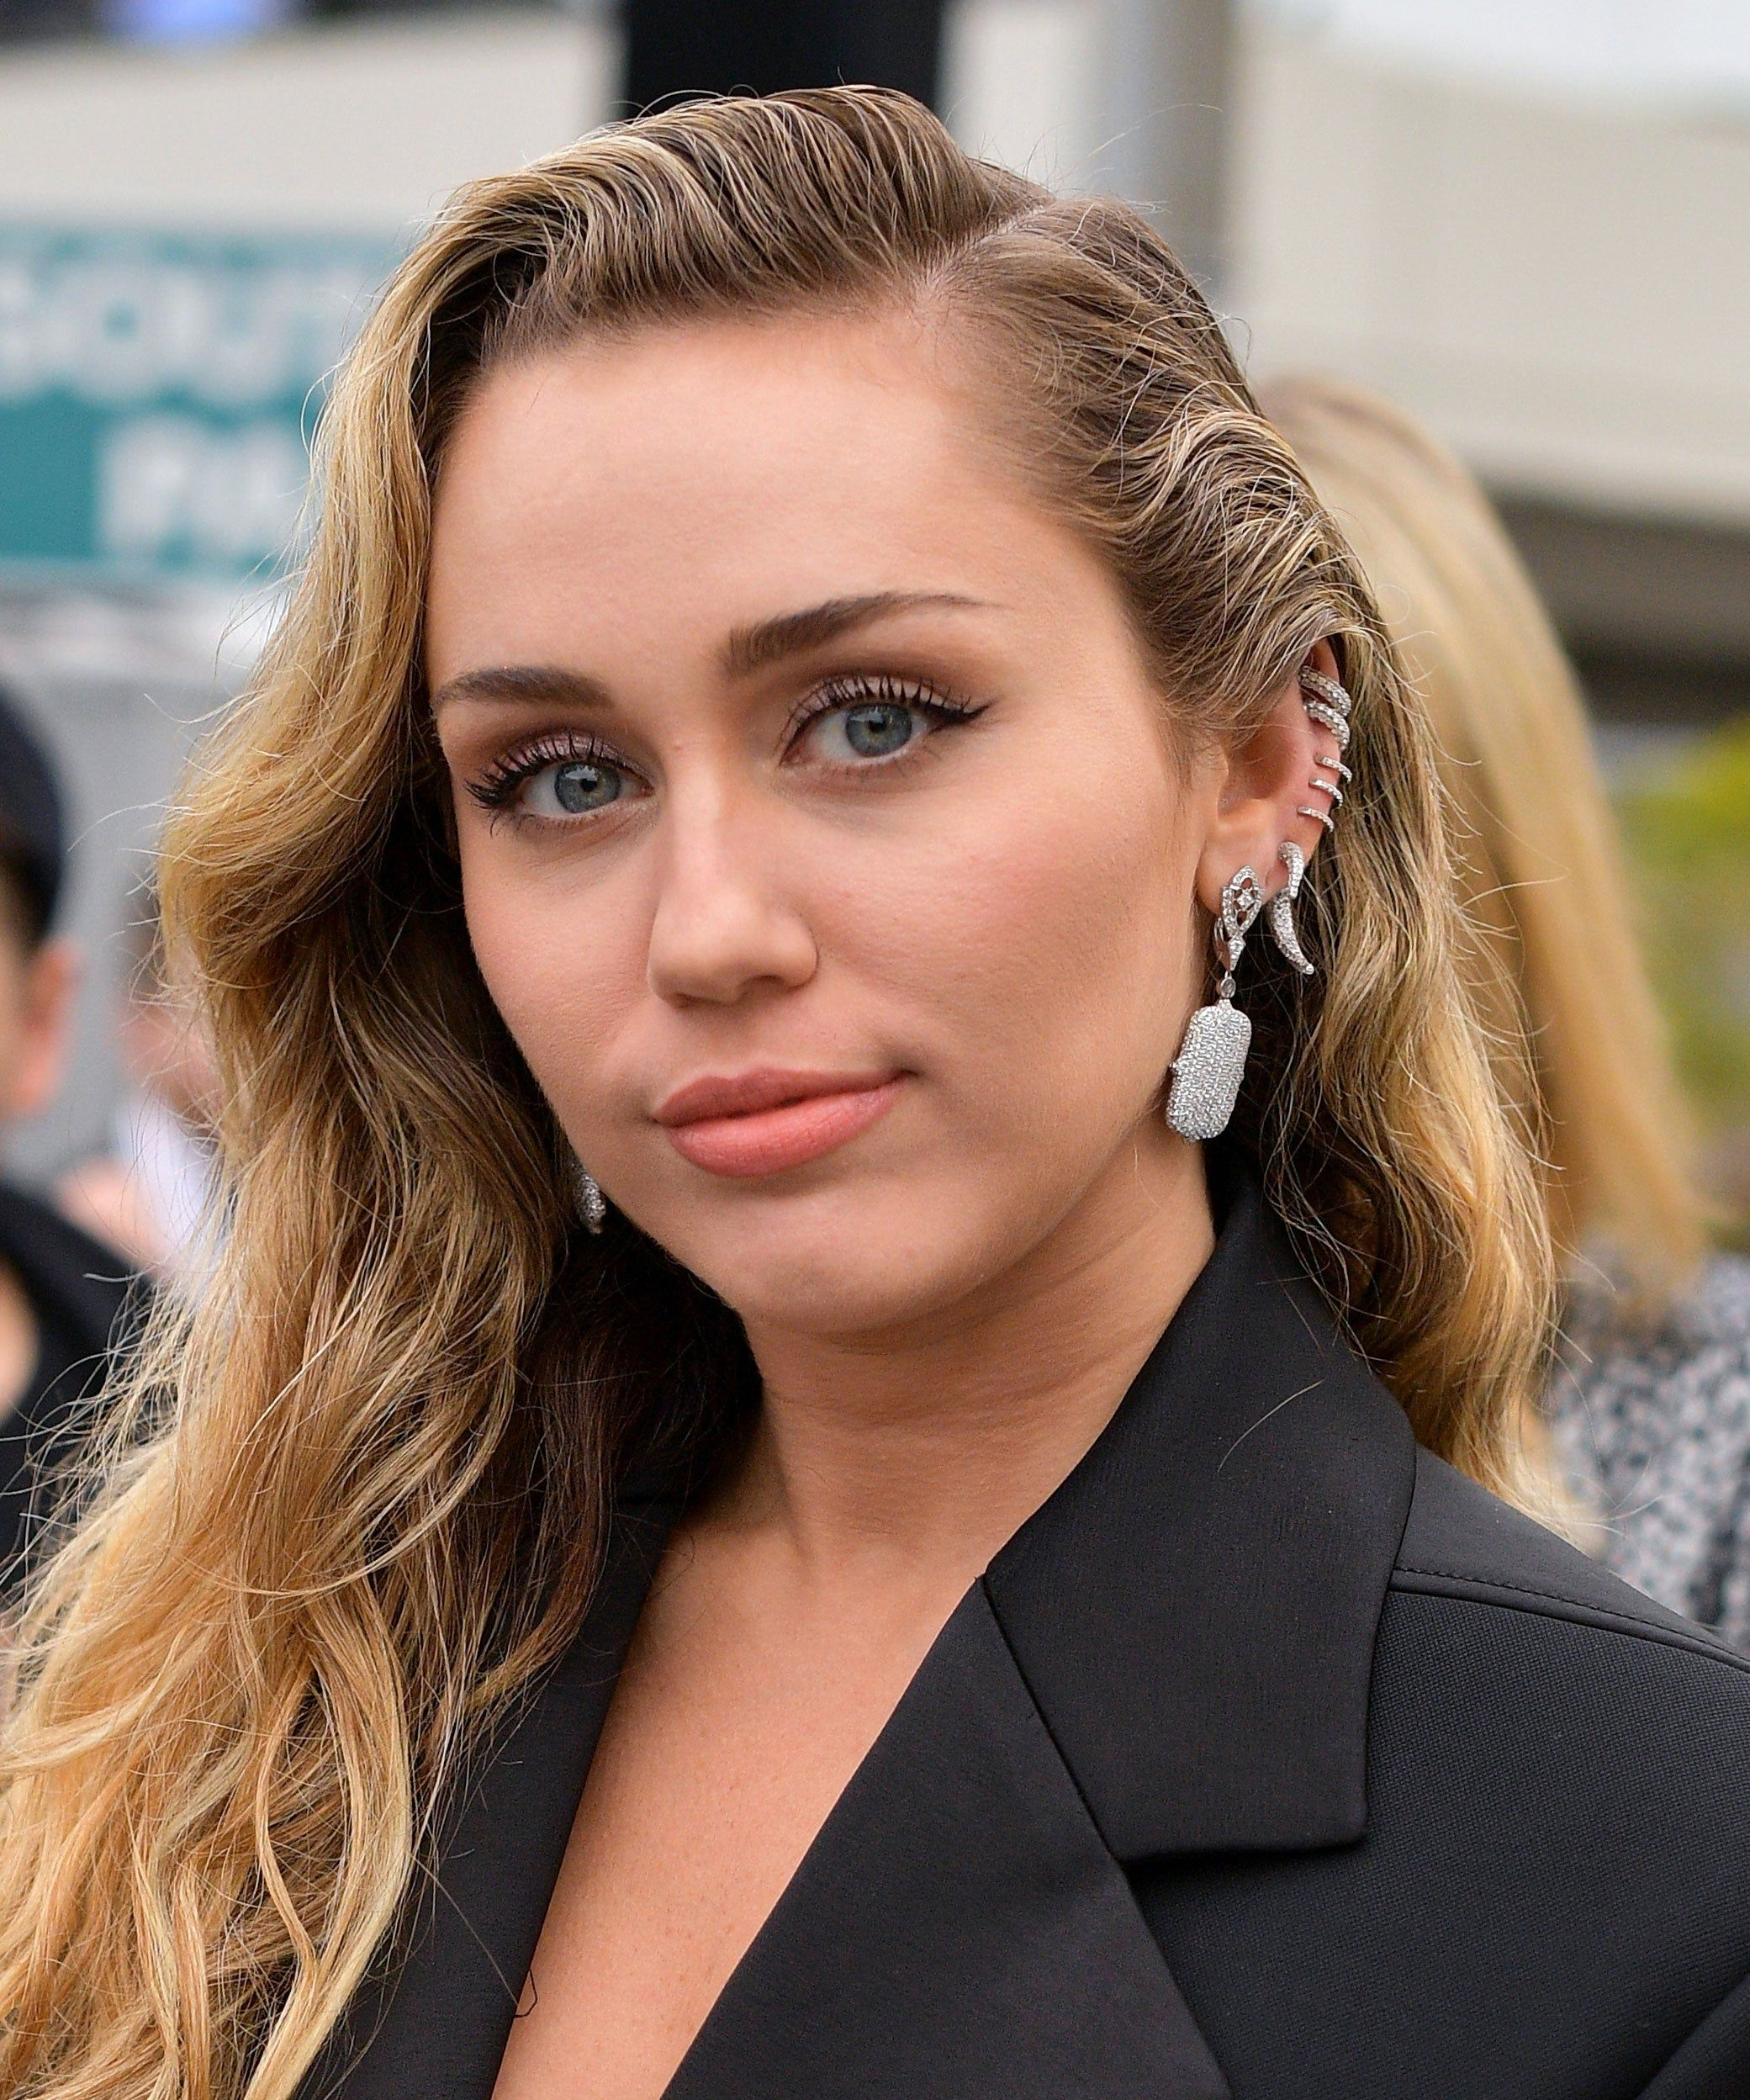 Miley Cyrus Is Making The Shaggy Mullet Happen For 2020 In 2020 Miley Cyrus Hair Miley Cyrus Miley